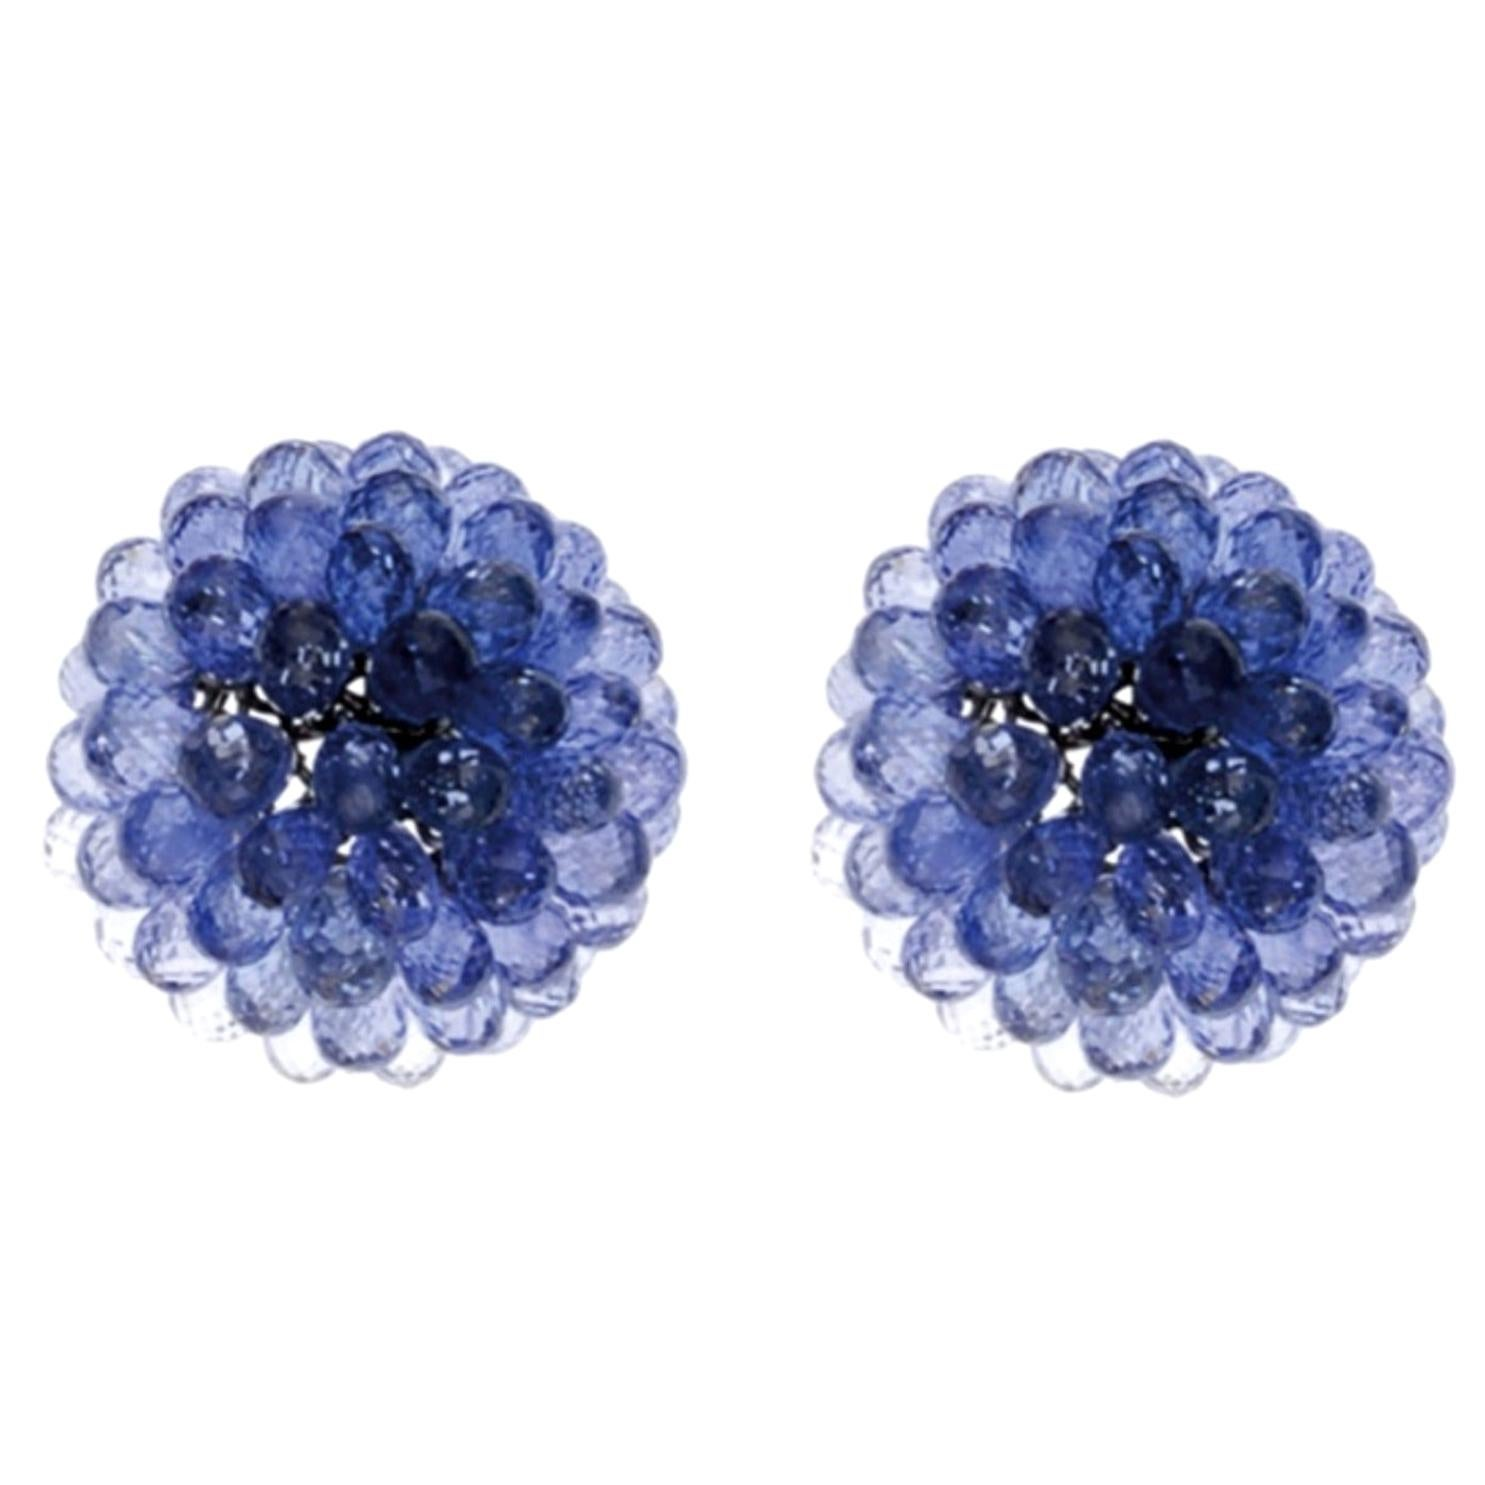 Chopard White Gold Briolette Sapphire Earrings, 80.90 Carat